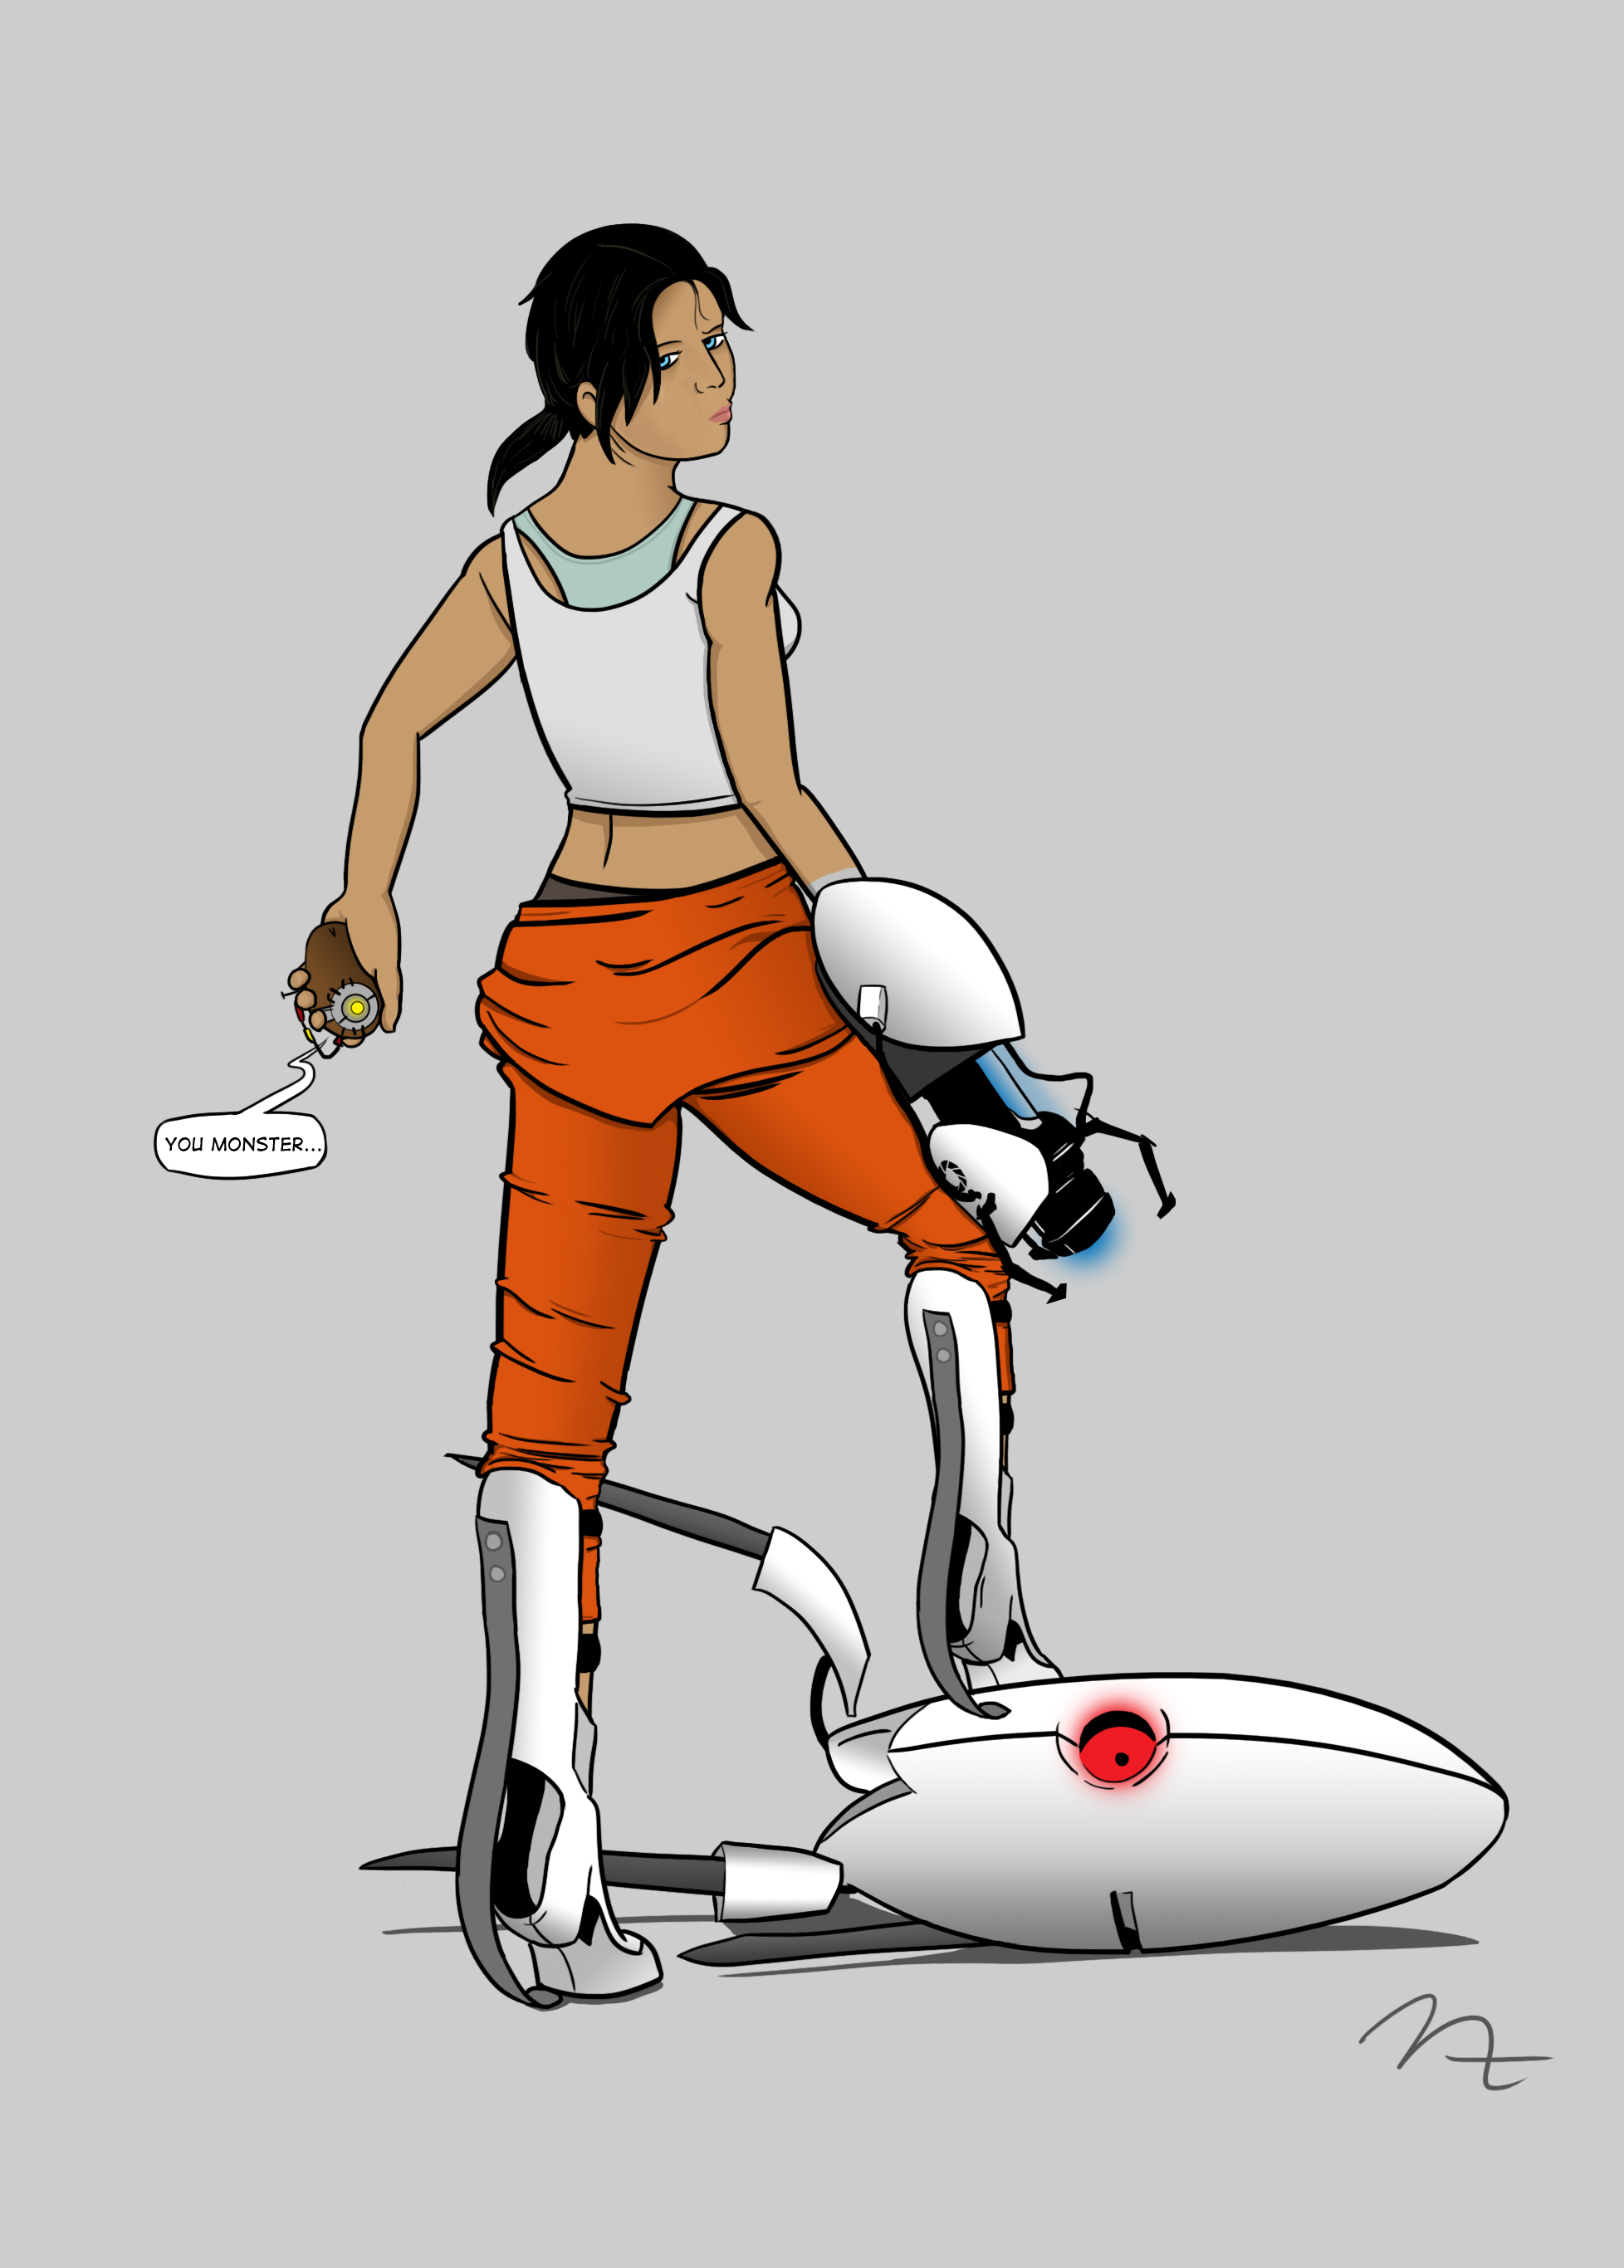 Portal Glados Chell Cake Ideas and Designs